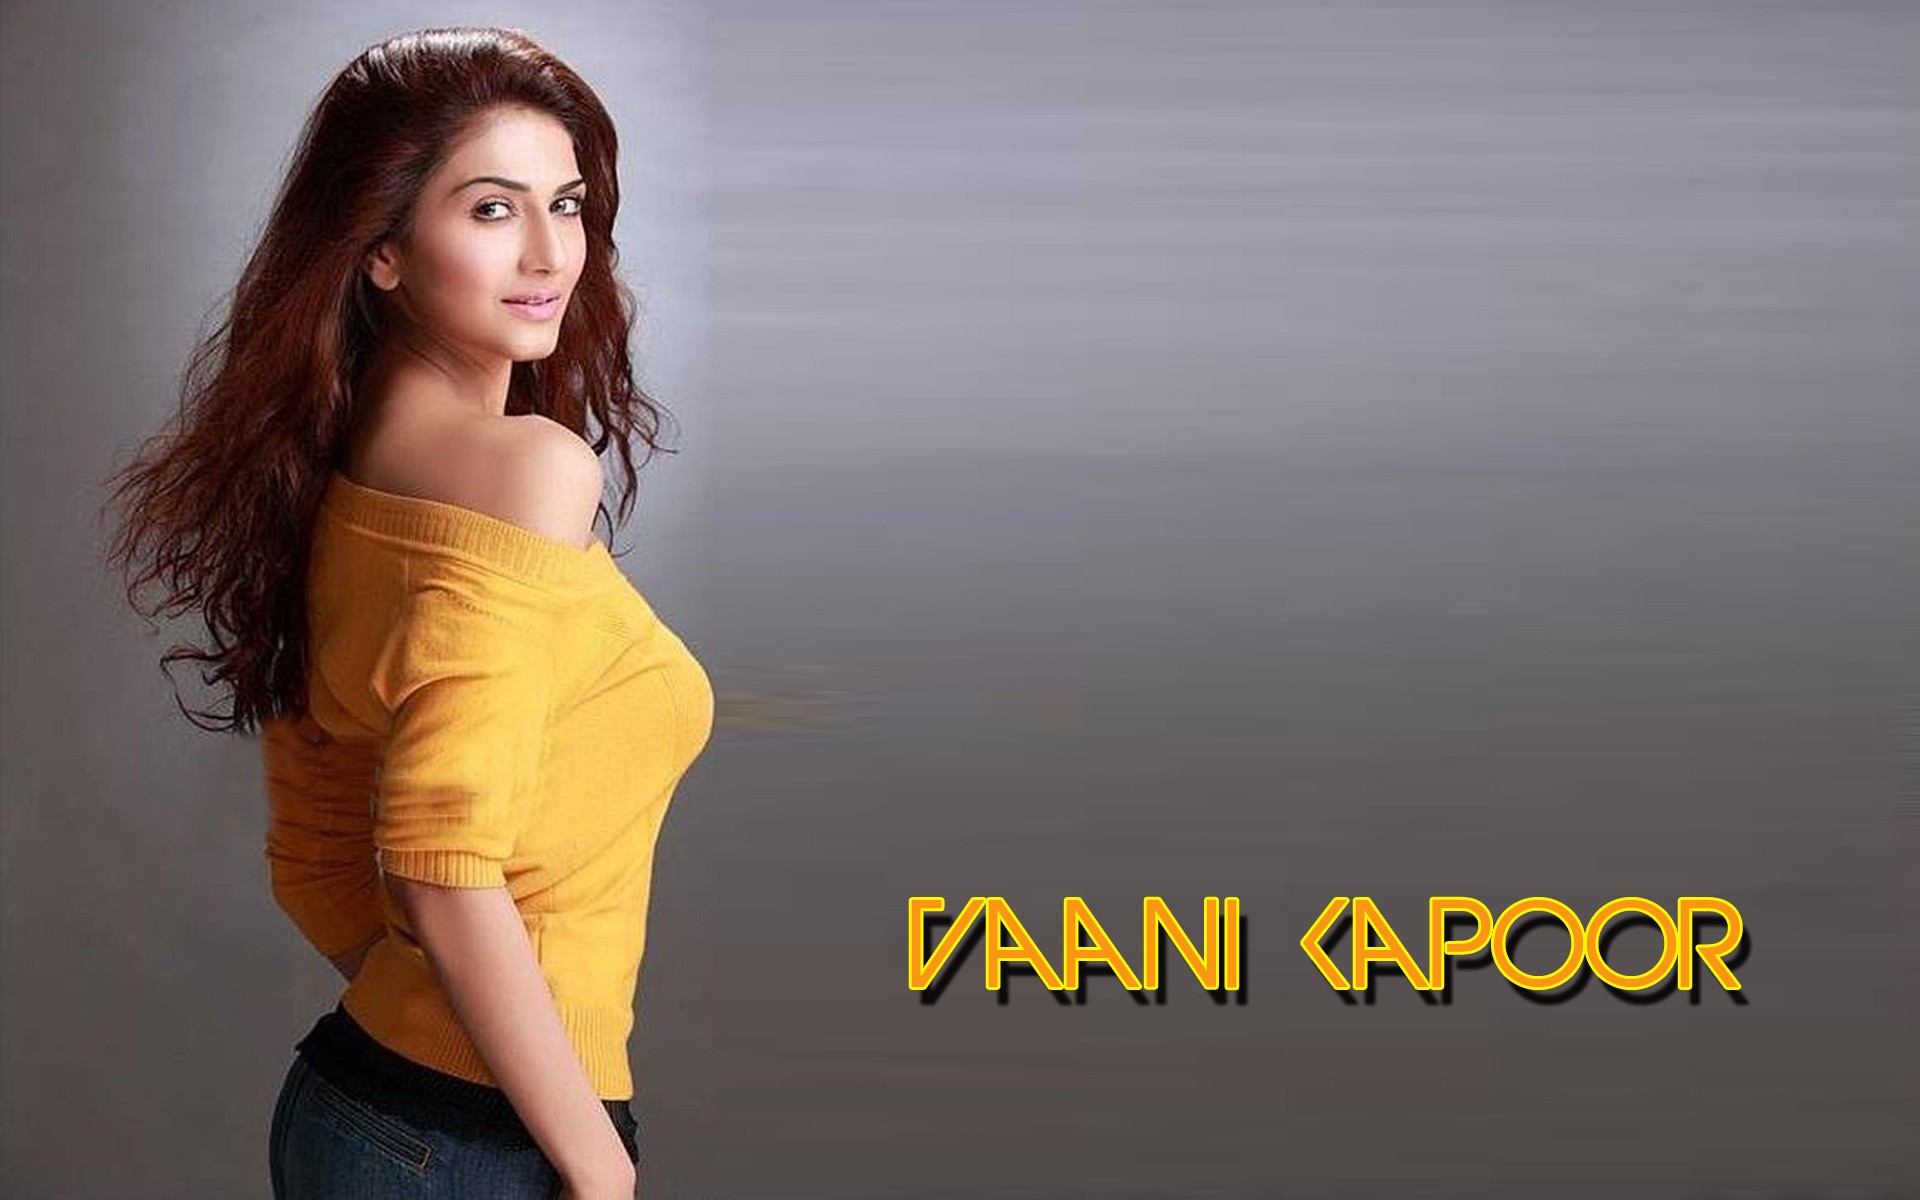 Vaani kapoor yellow dress hd wallpaper